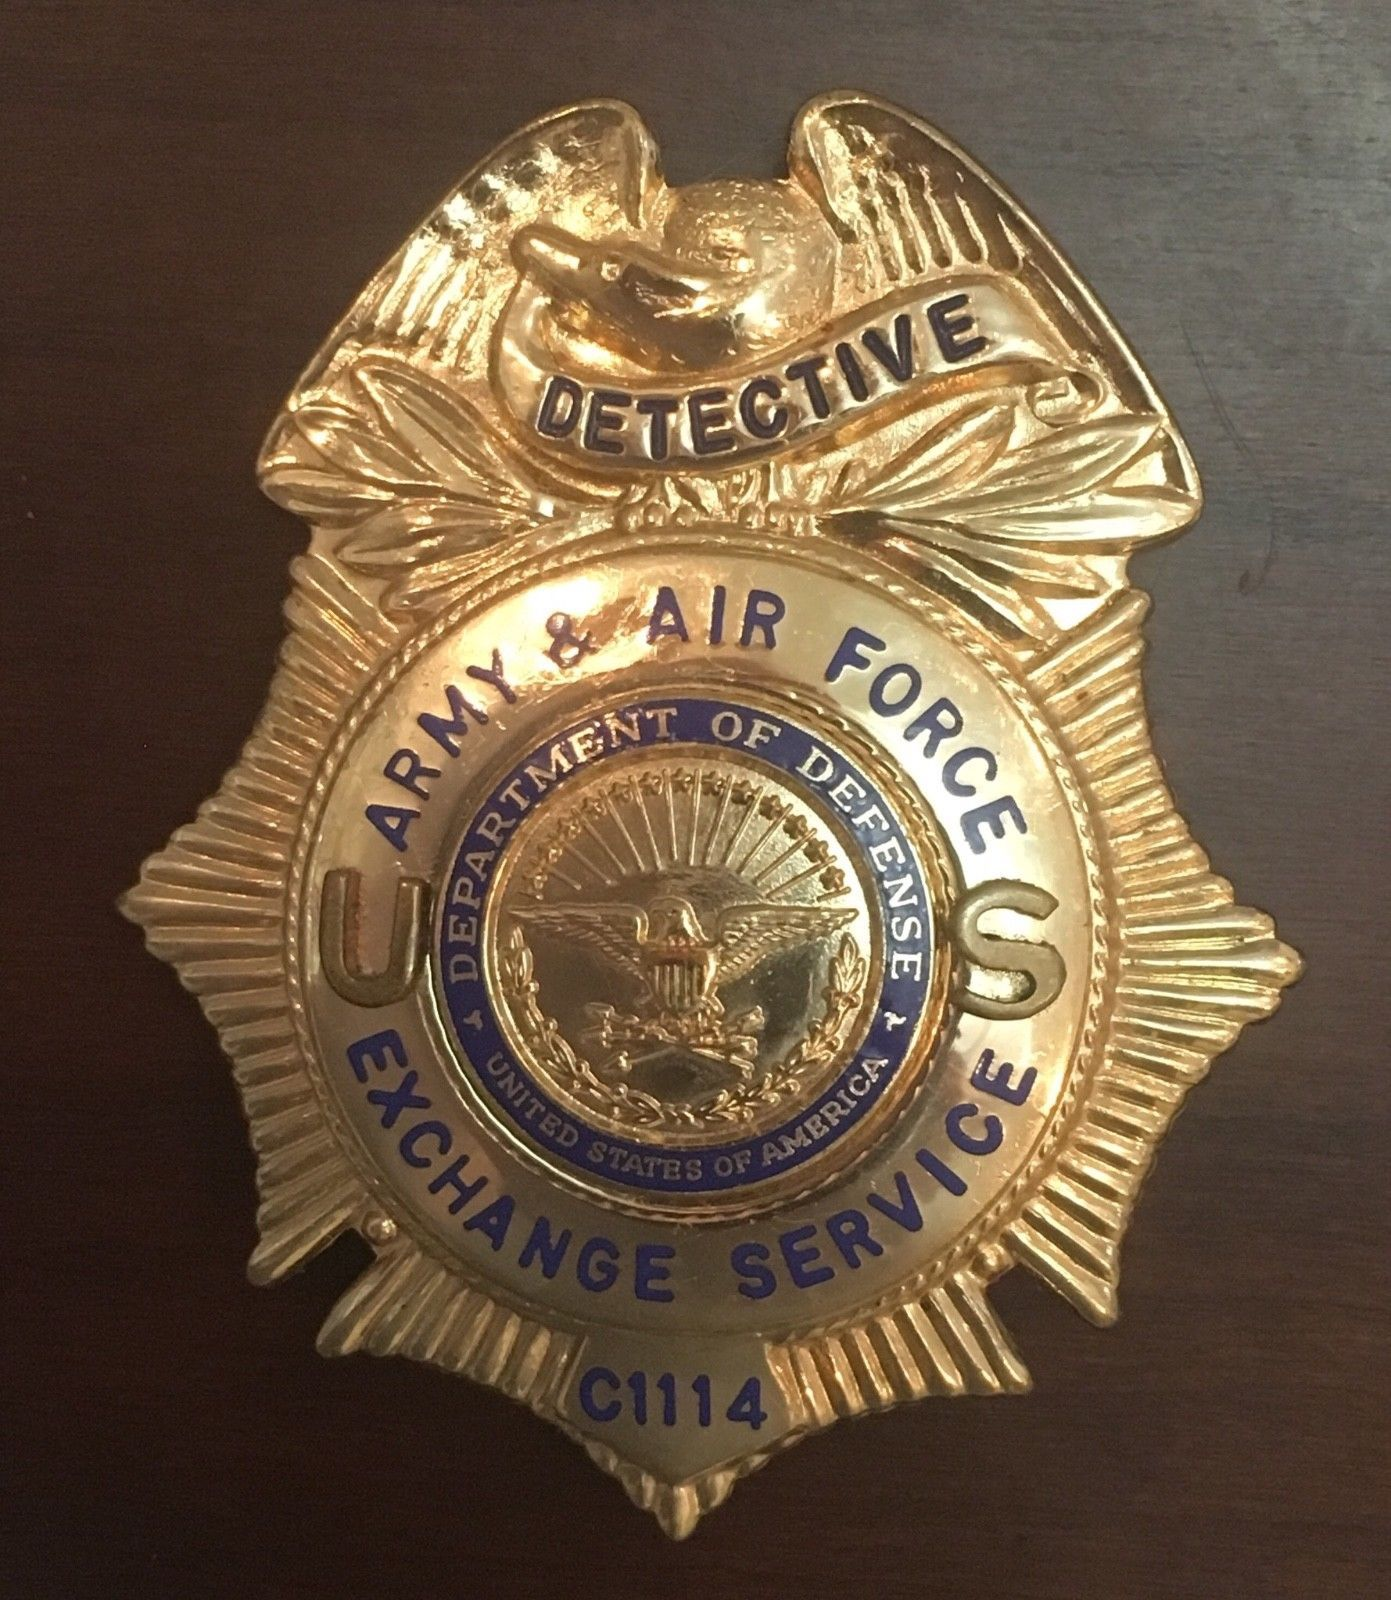 Detective, Army & Air Force Exchange, DoD (Blackinton) | Law